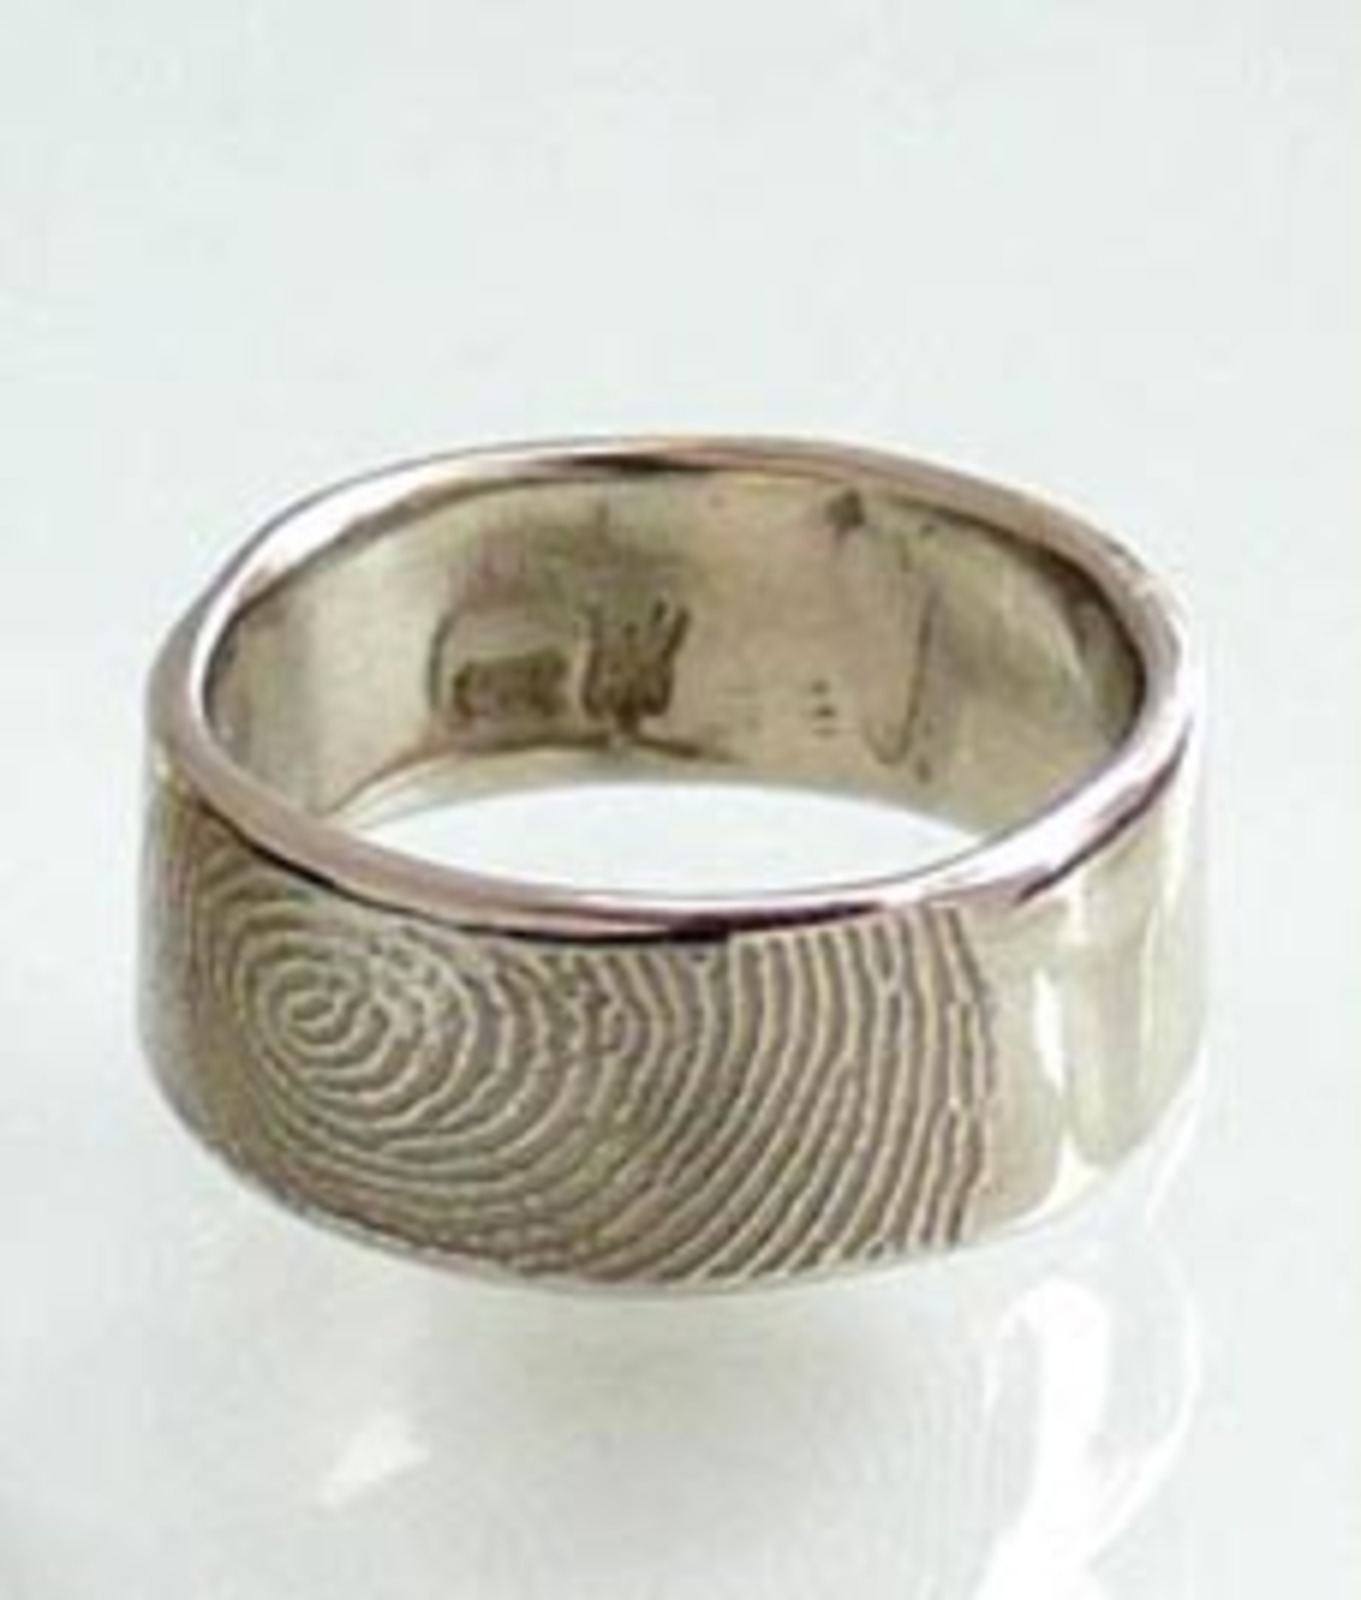 ring on band rings photo trend traditional bands spin wedding personal fingerprint puts kehrnal qalltzm